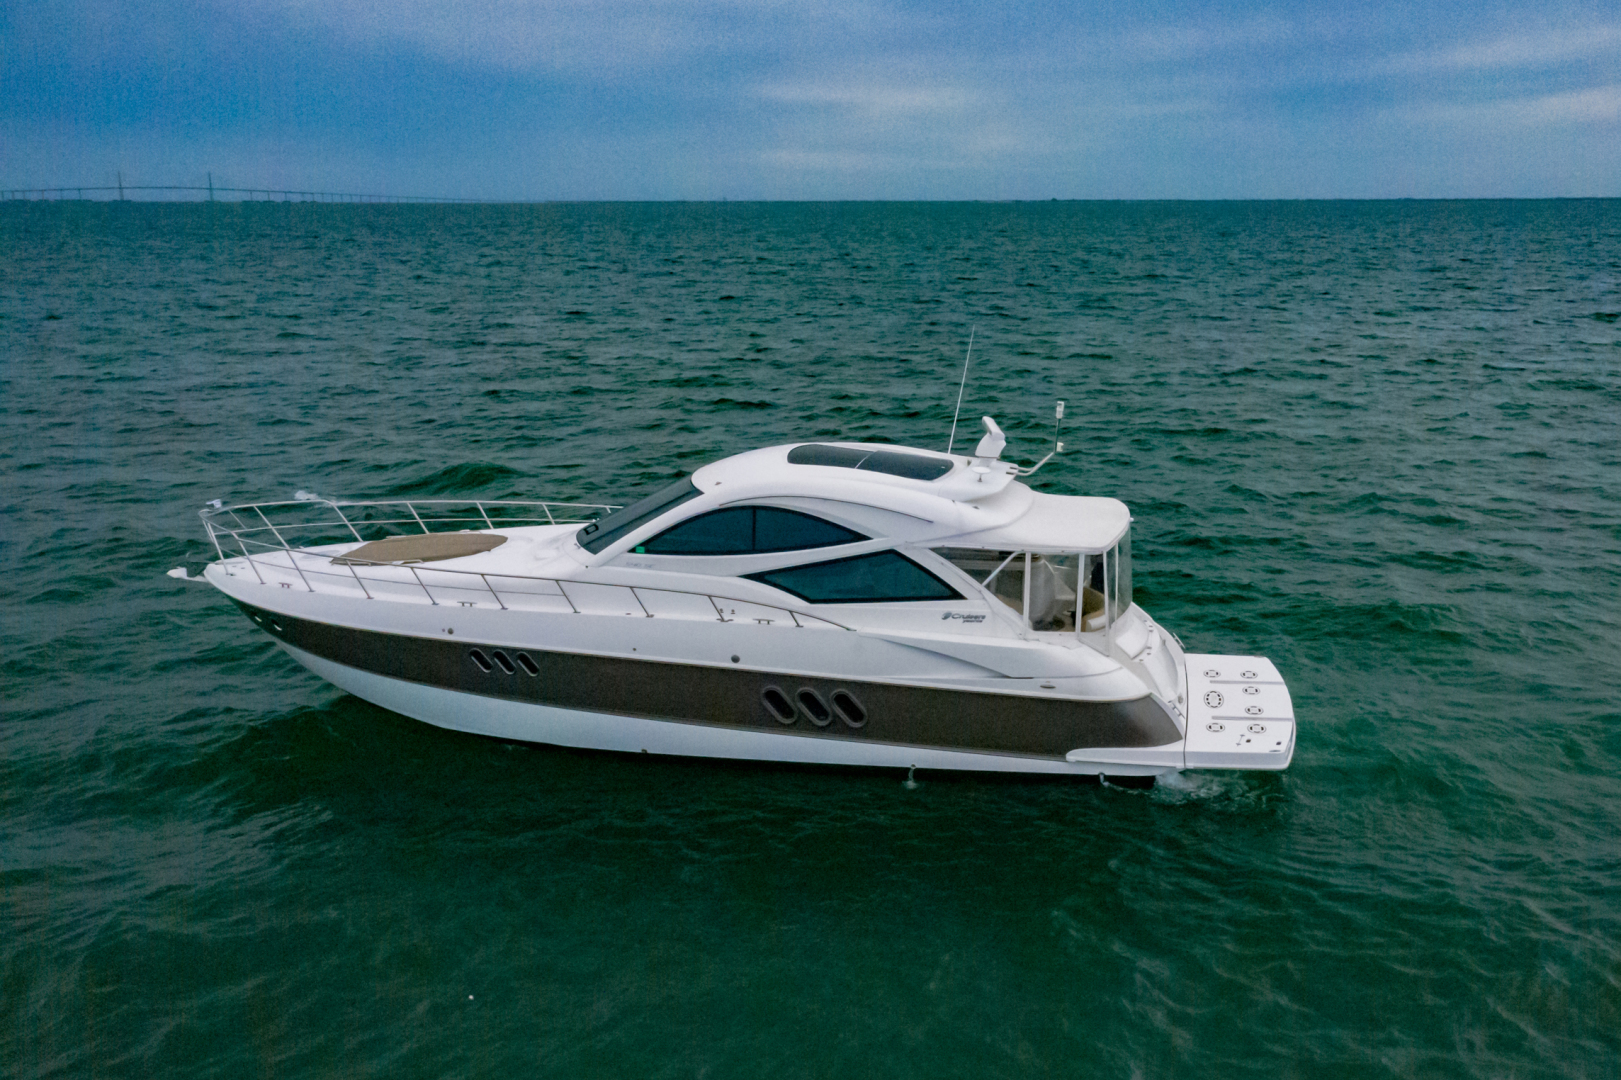 Cruisers-540 Coupe 2014-Galati Yacht Sales Trade Destin-Florida-United States-2014 Cruisers 540 Coupe-1417881 | Thumbnail